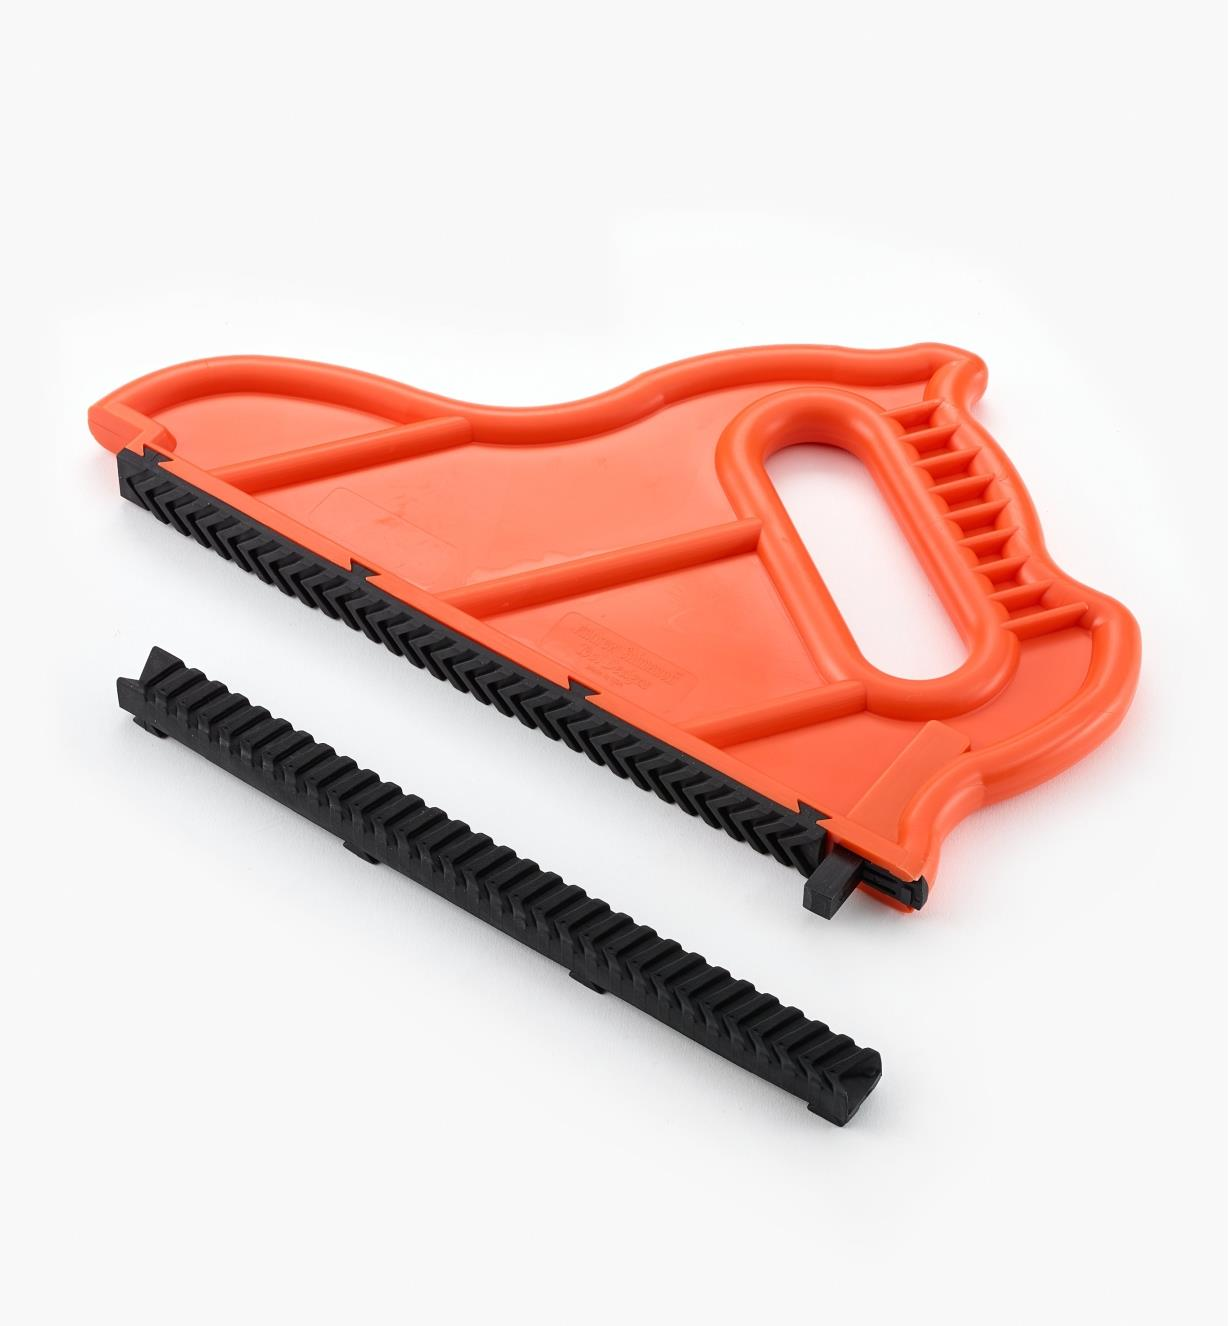 03J7550 - Dual-Tread Push Stick